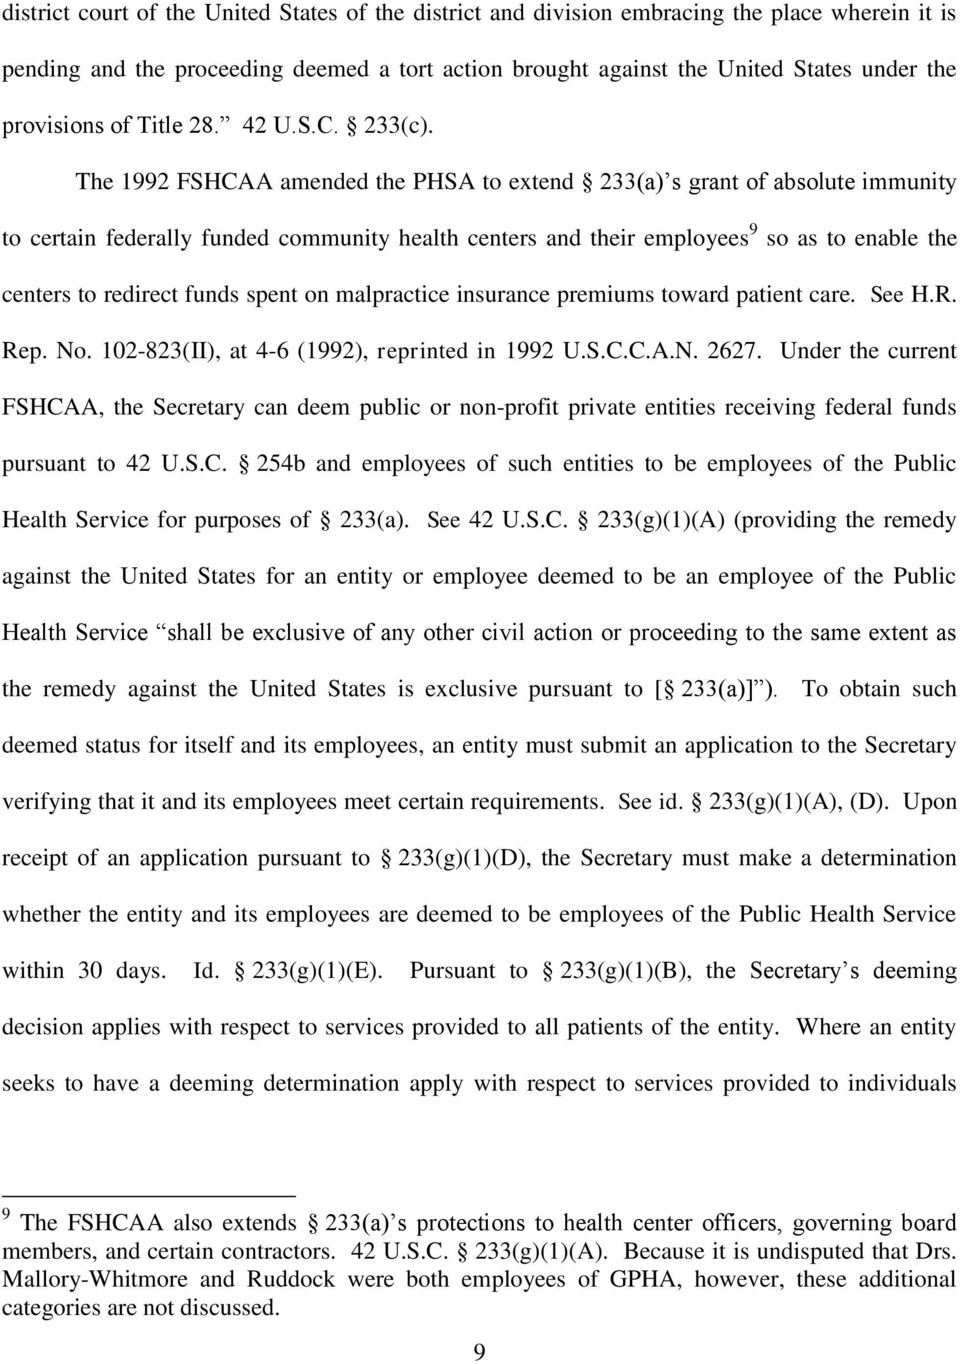 The 1992 FSHCAA amended the PHSA to extend 233(a) s grant of absolute immunity to certain federally funded community health centers and their employees 9 so as to enable the centers to redirect funds